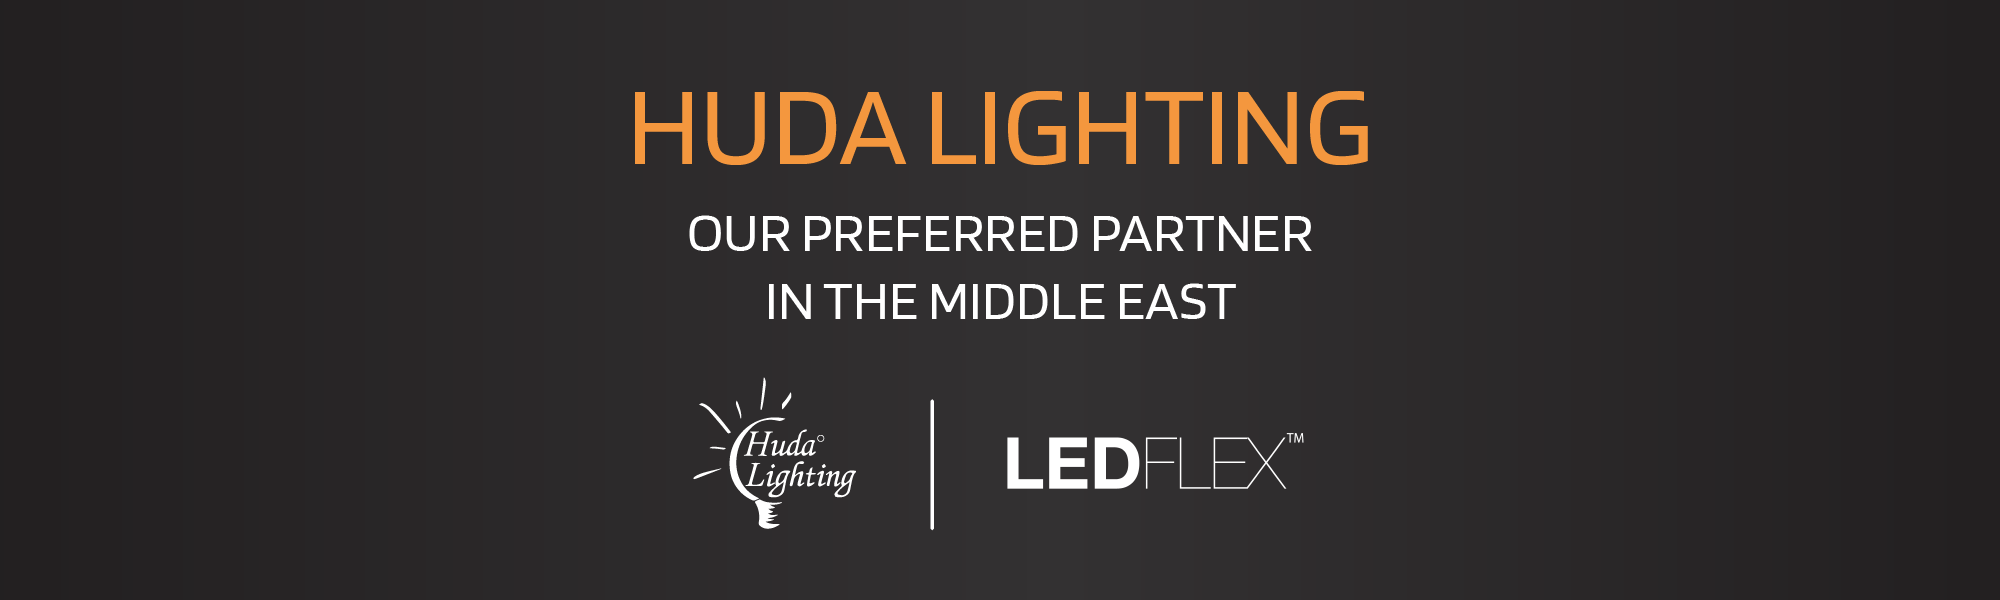 Huda Lighting - Our Preferred Partner in the Middle East